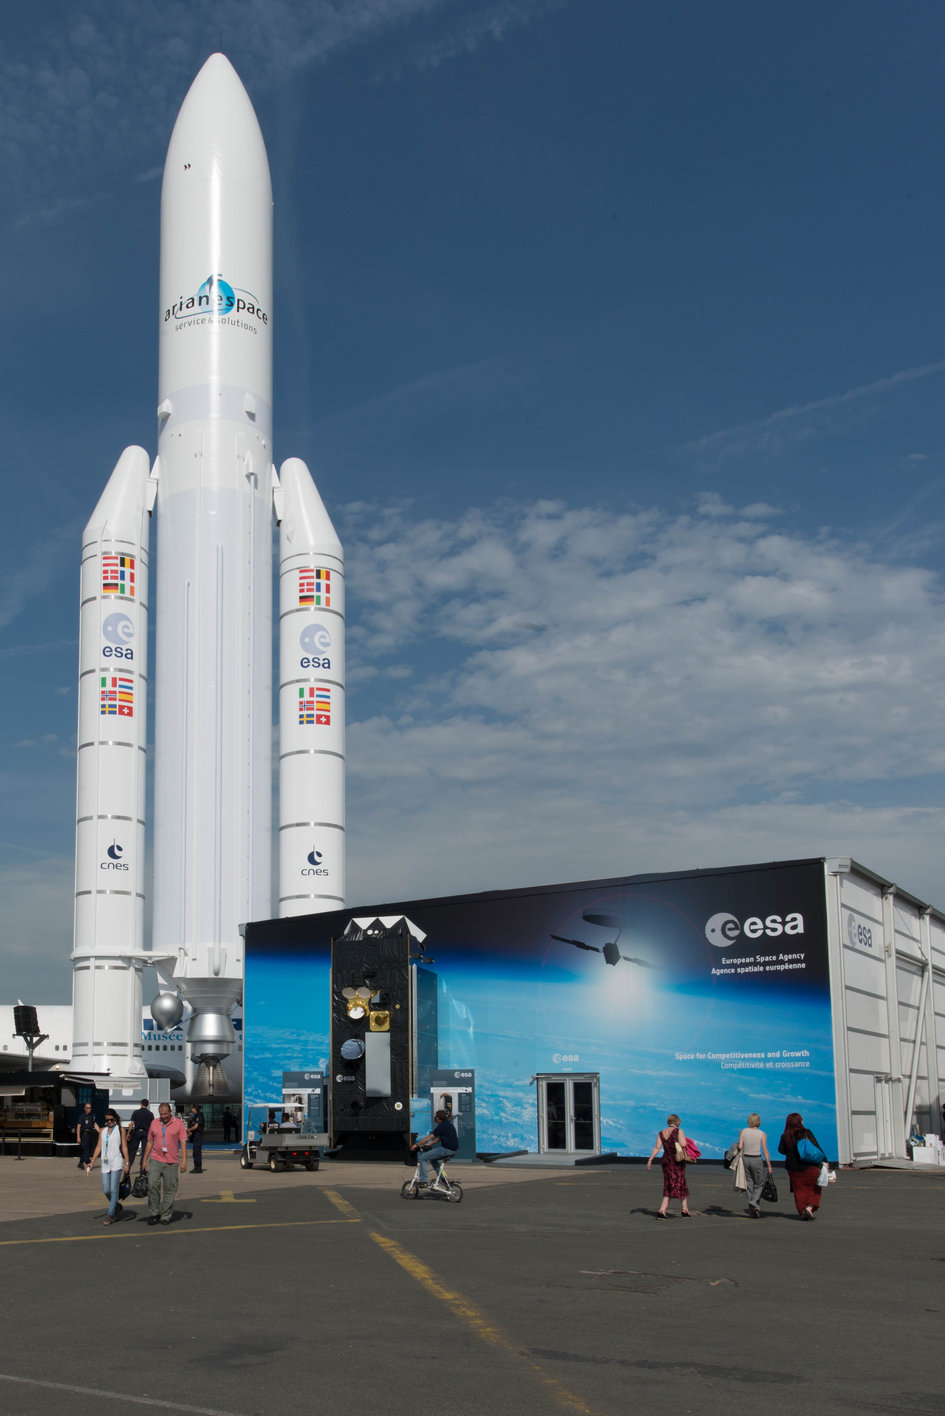 ESA pavilion at the Paris Air & Space Show